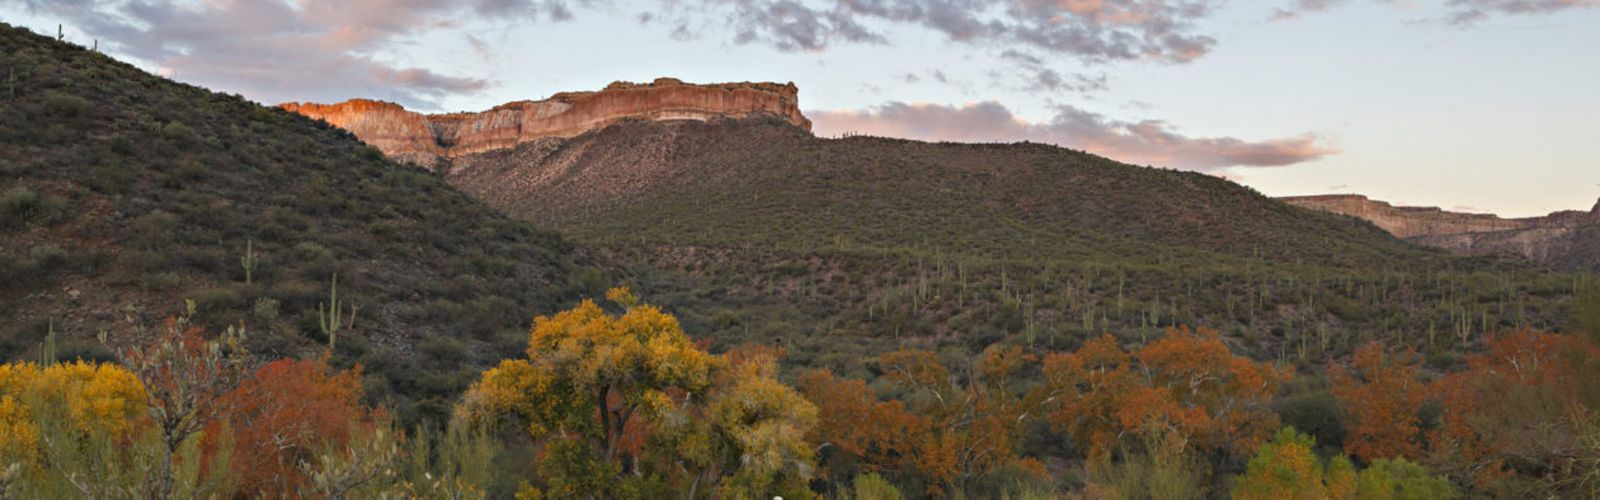 The vertical cliffs of Aravaipa Canyon stand as witness to the lowlands that meet the northern edge of the Galiuros in Arizona.